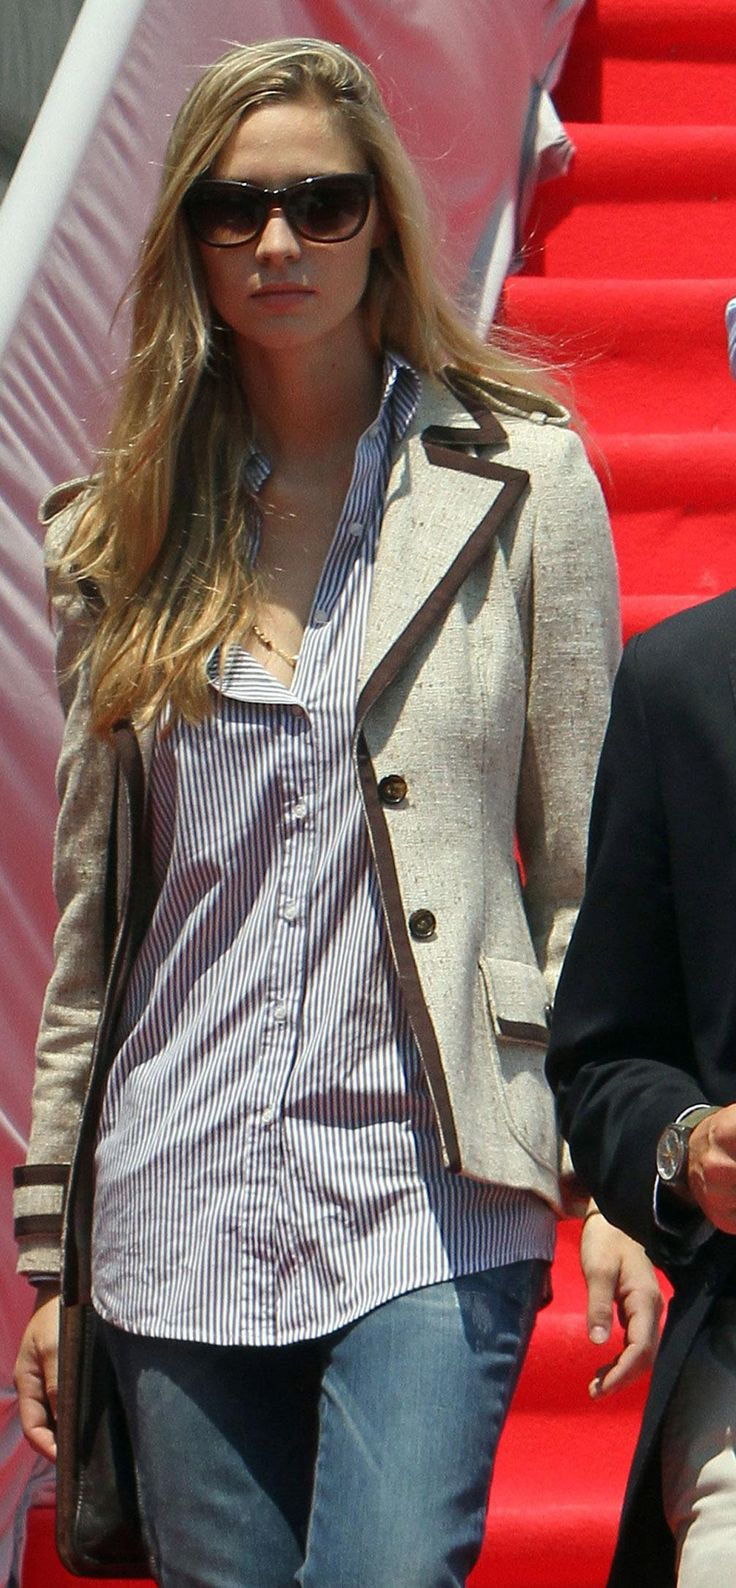 Beatrice Borromeo, Monaco's Kate Middleton, has super style (like this easy layered look we love for fall). Click for 7 amazing outfits